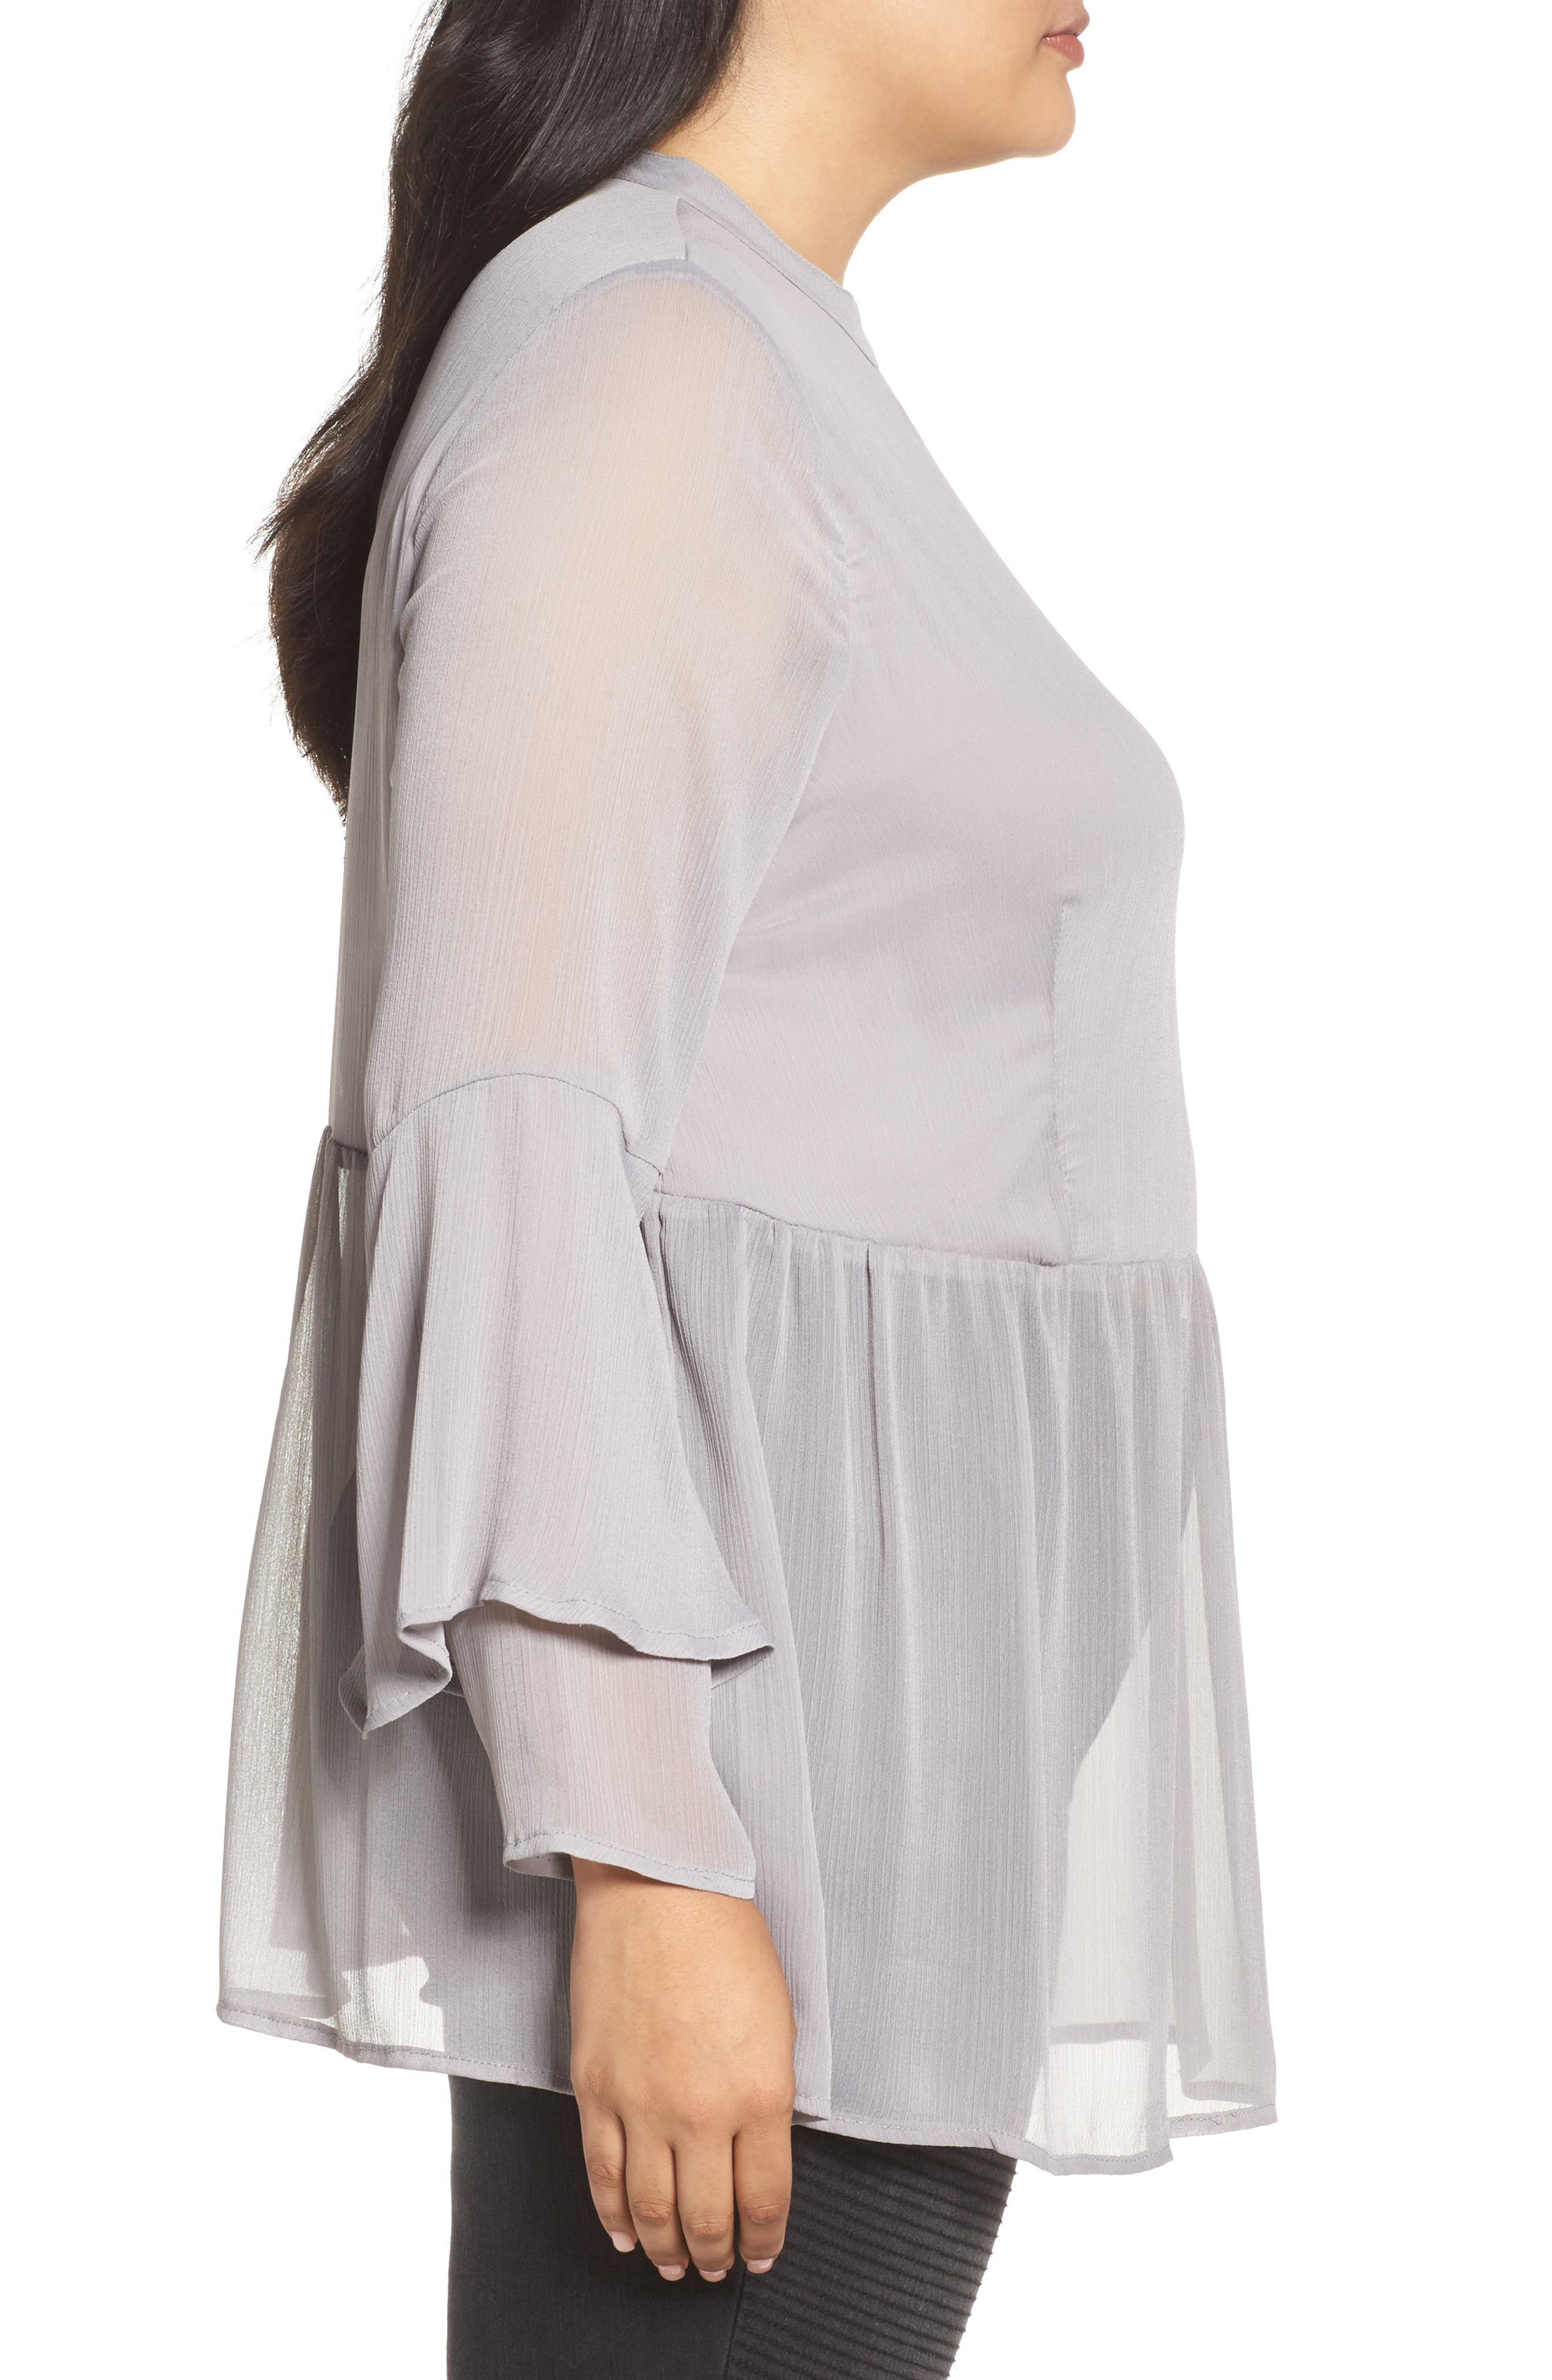 Alternate Image 3  - LOST INK Crinkled Chiffon Top (Plus Size)